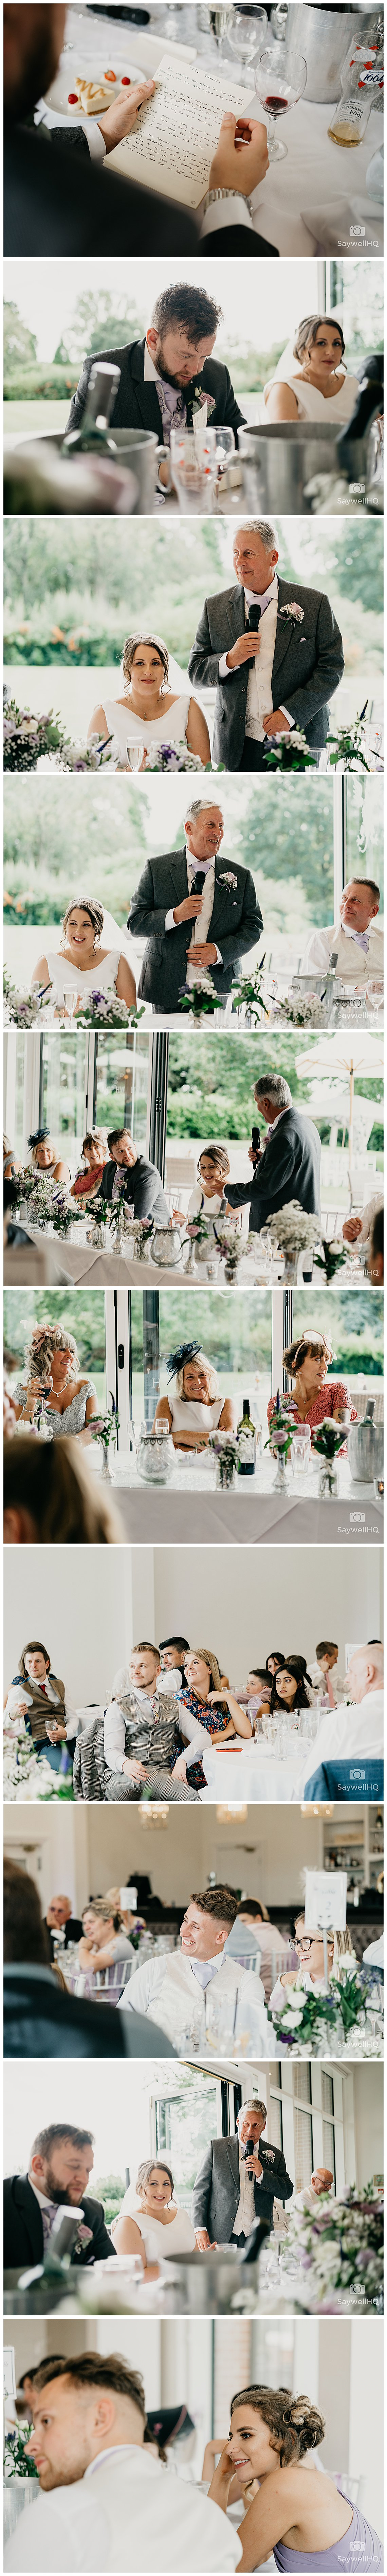 Wedding Photography at Winstanley House in Leicester